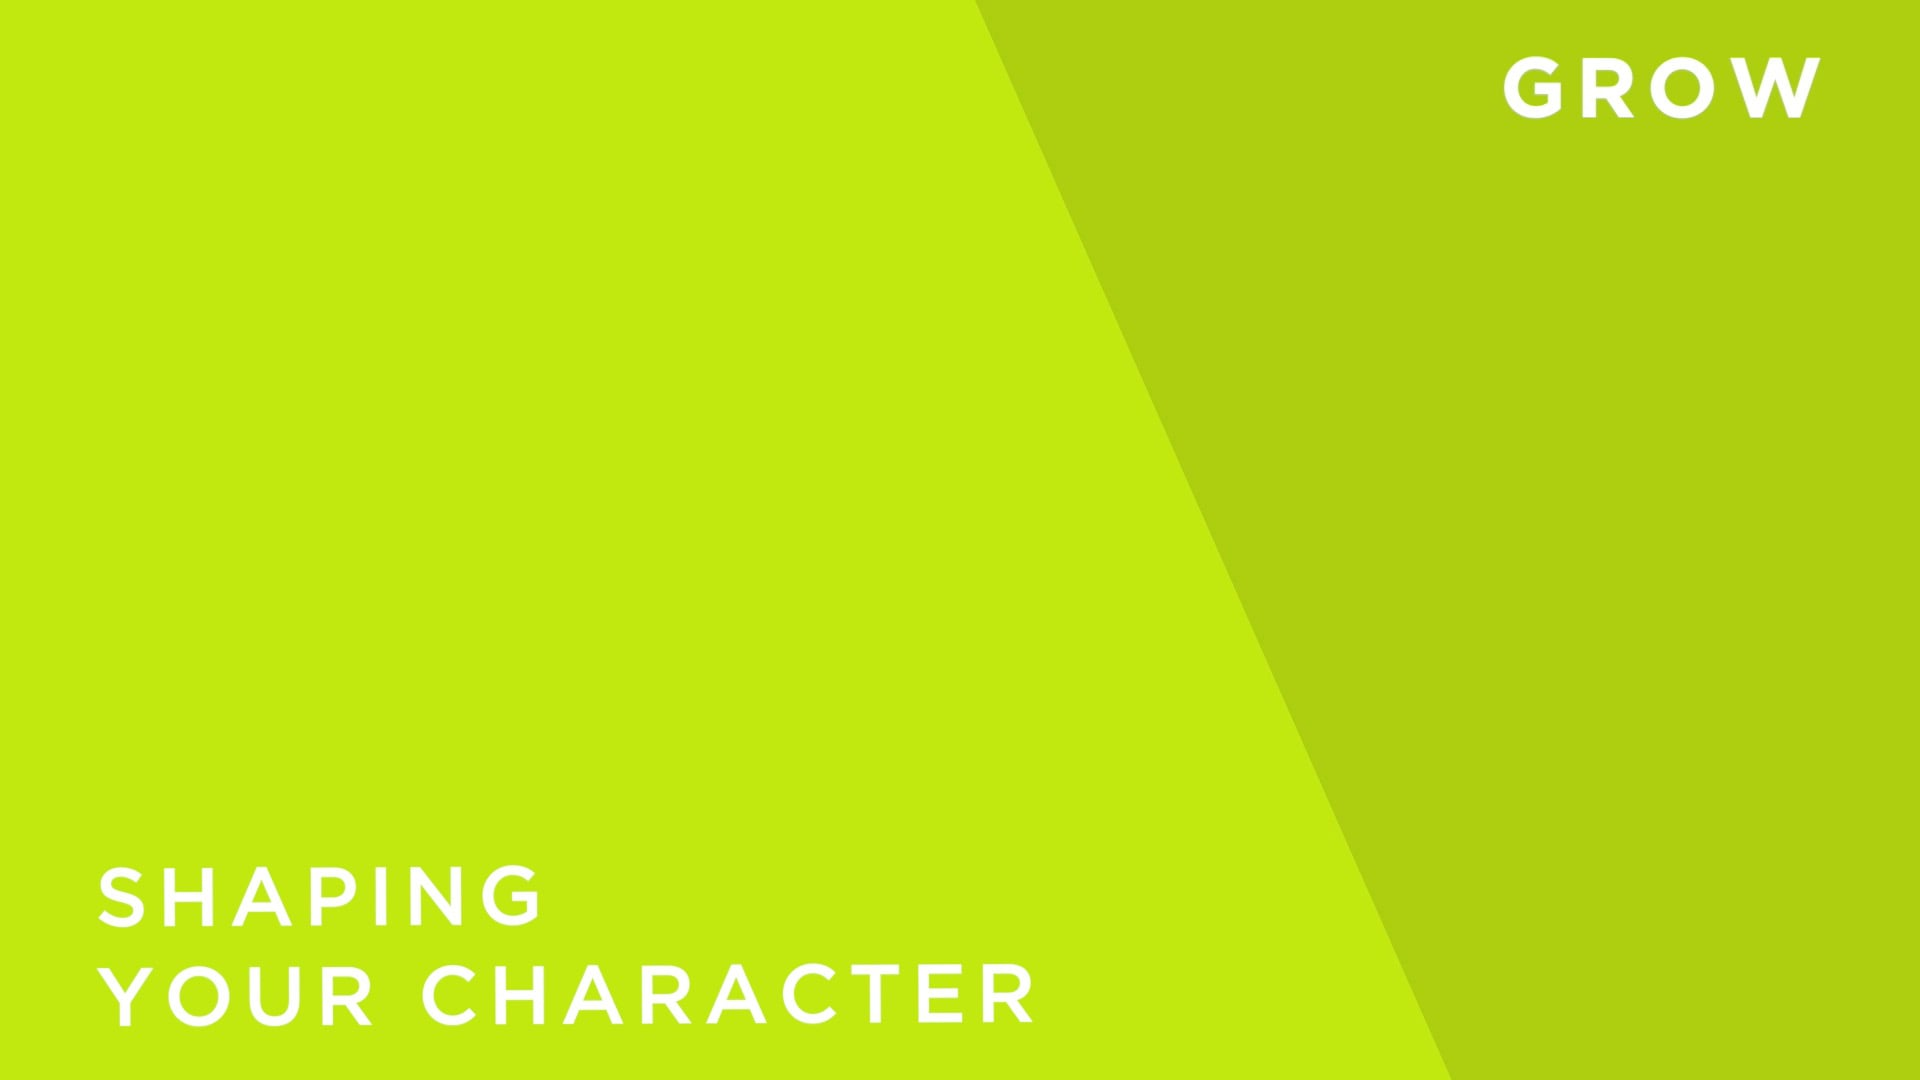 Shaping Your Character